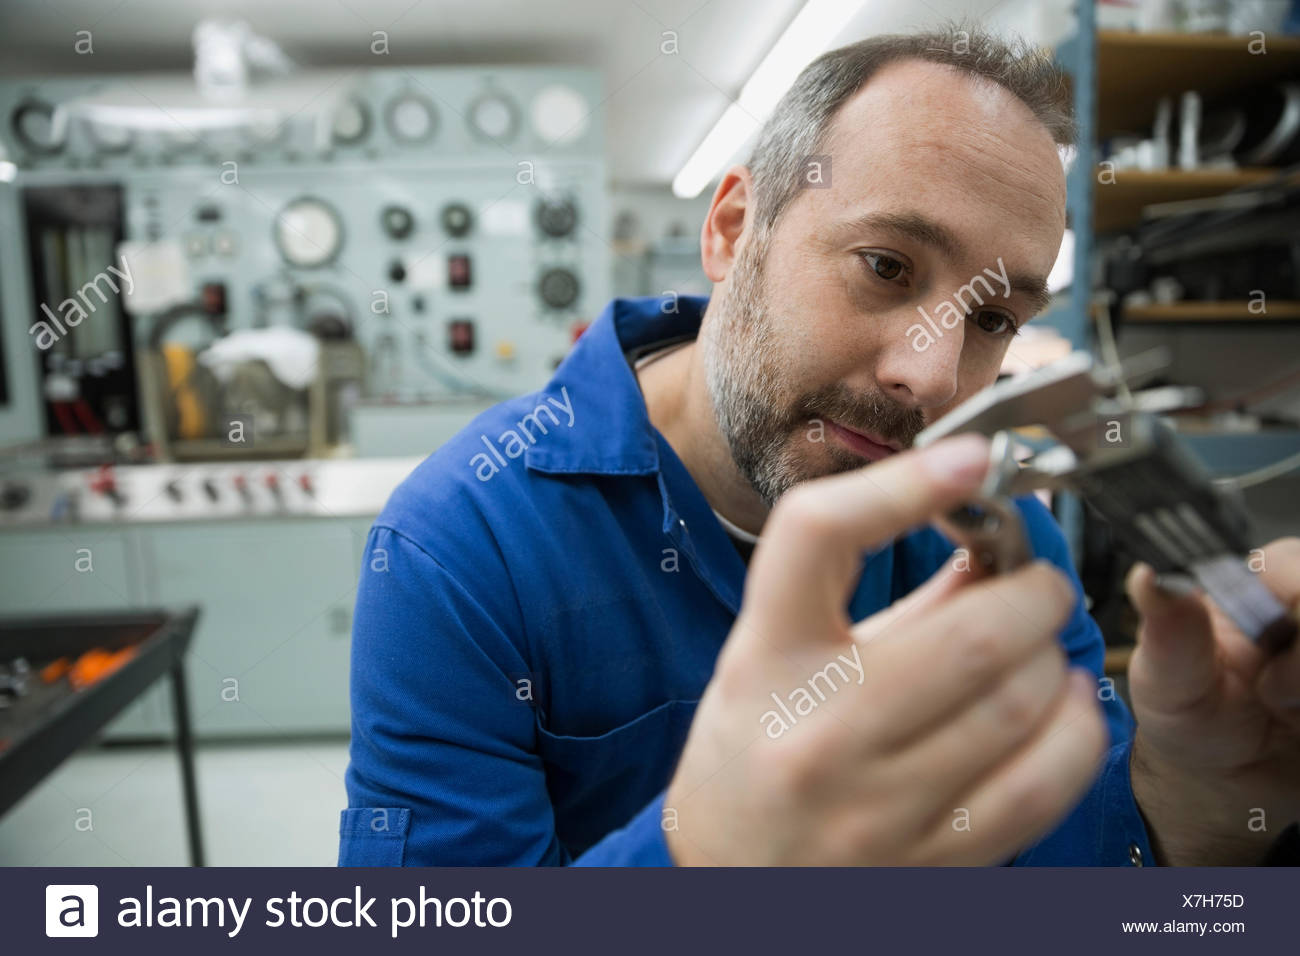 Helicopter mechanic examining part in workshop - Stock Image